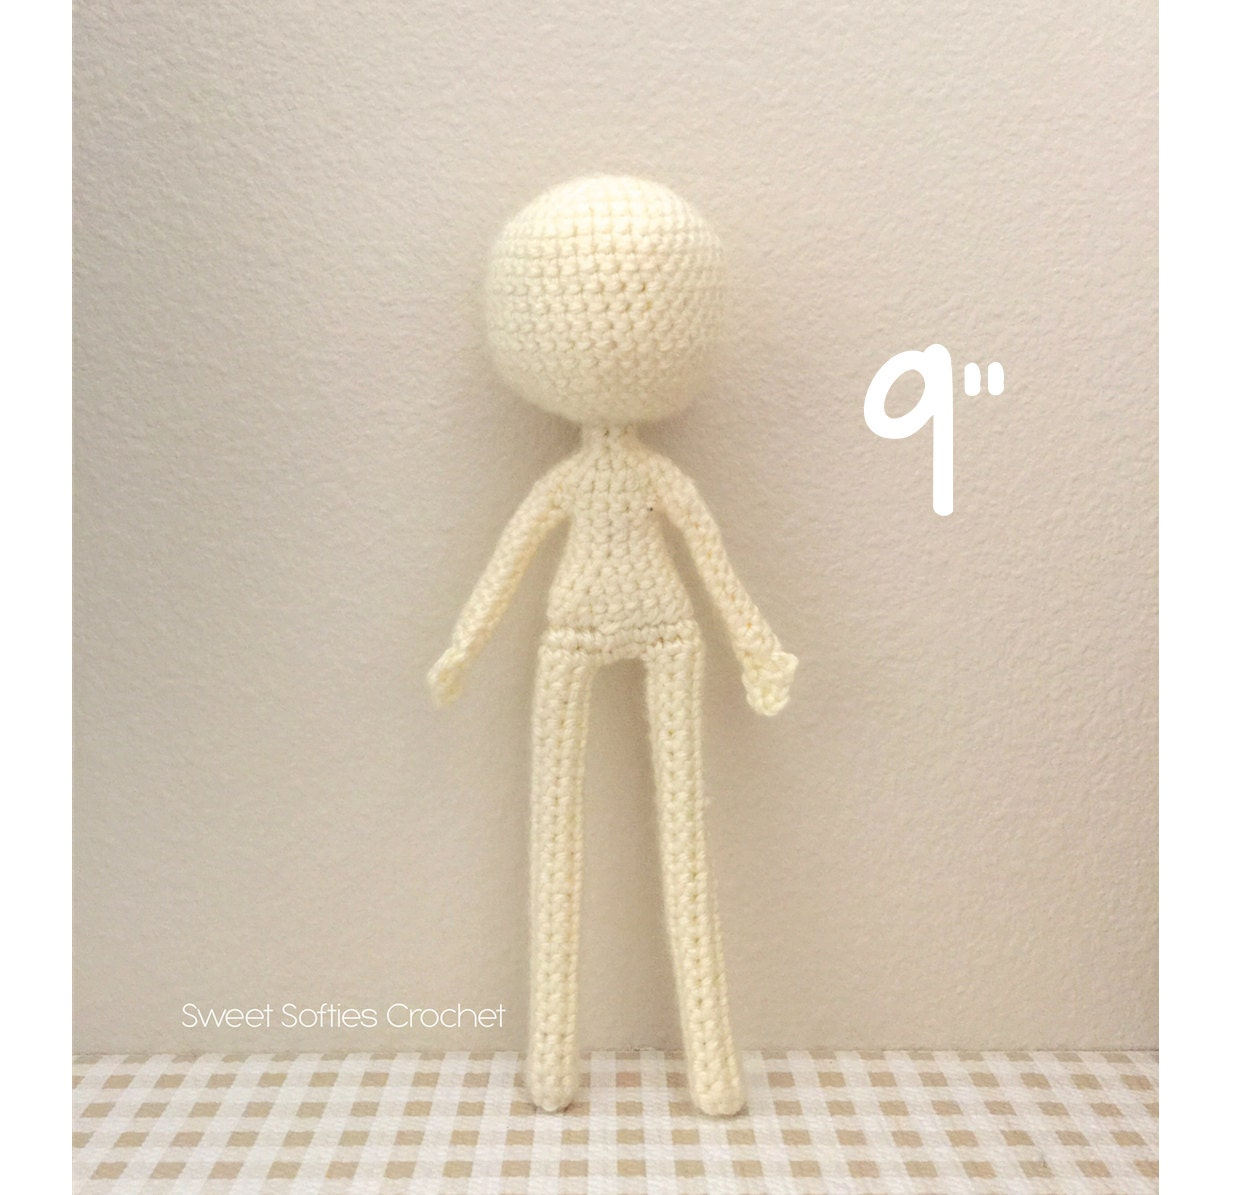 Crochet Amigurumi Doll Body : 9 Slender Doll Base Amigurumi Crochet Pattern for by Sylemn